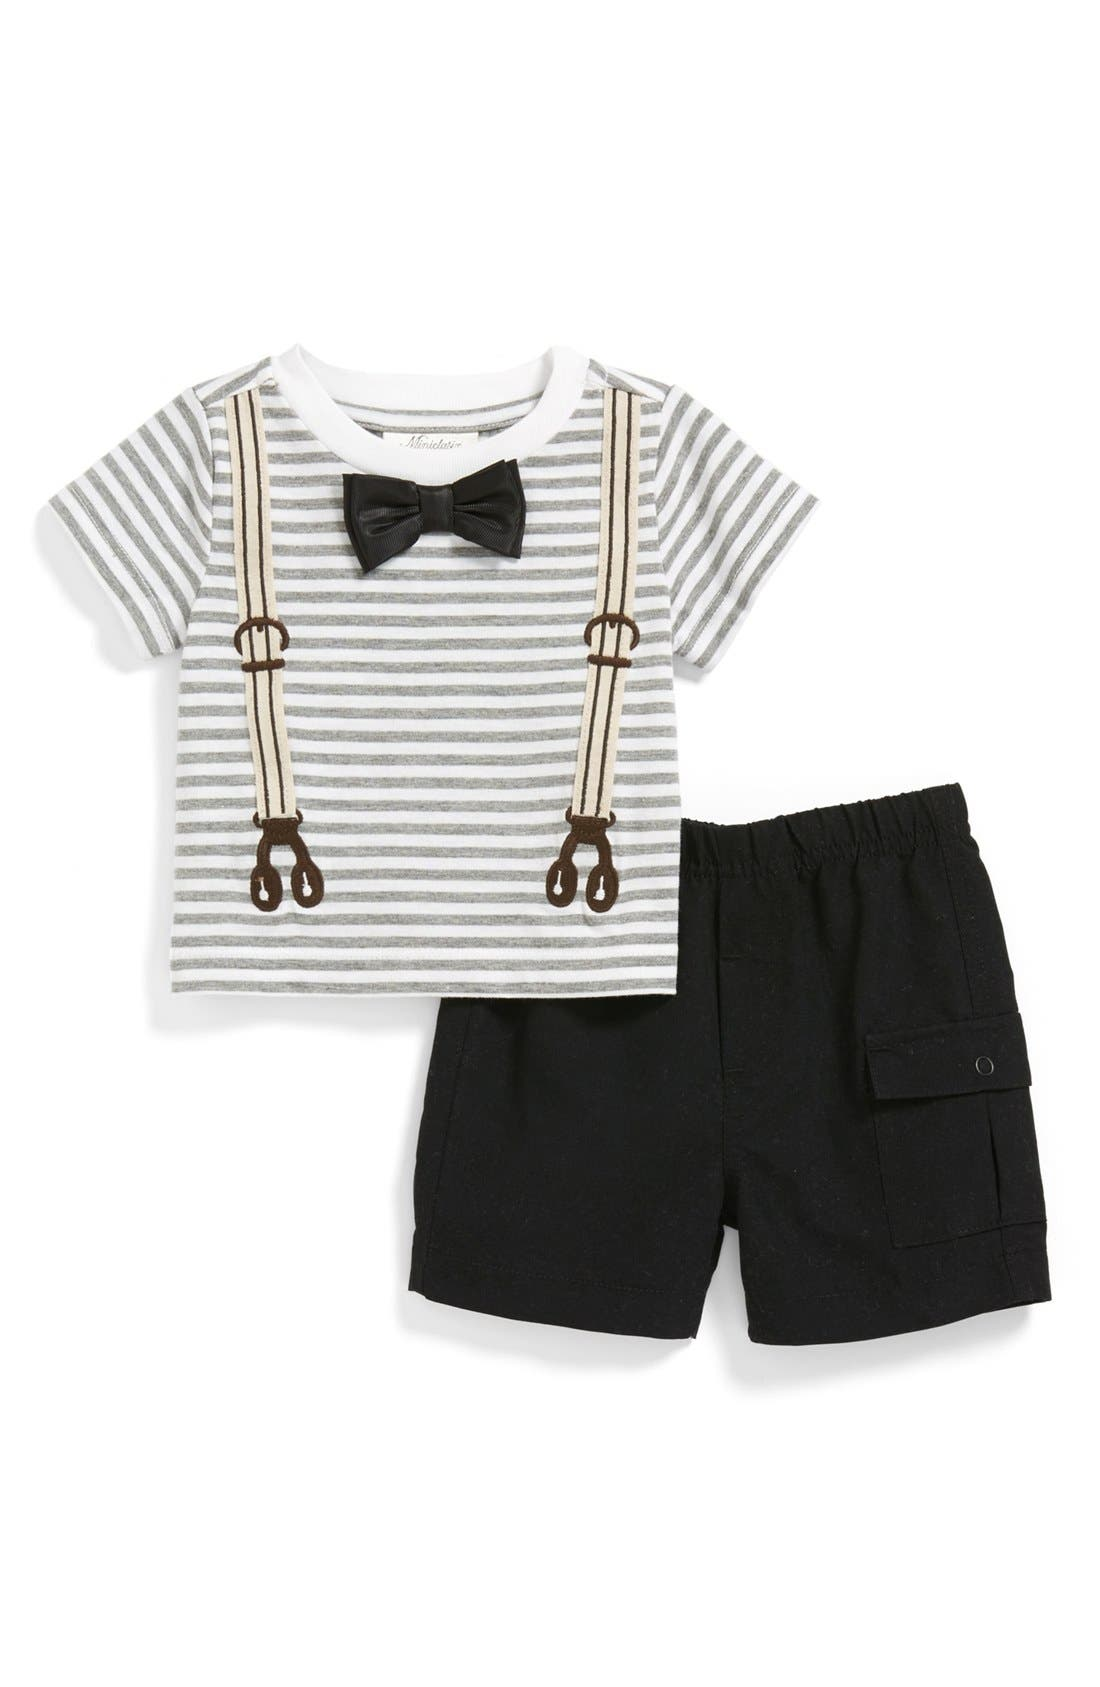 Alternate Image 1 Selected - Miniclasix 'Bow Tie' T-Shirt & Shorts (Baby Boys)